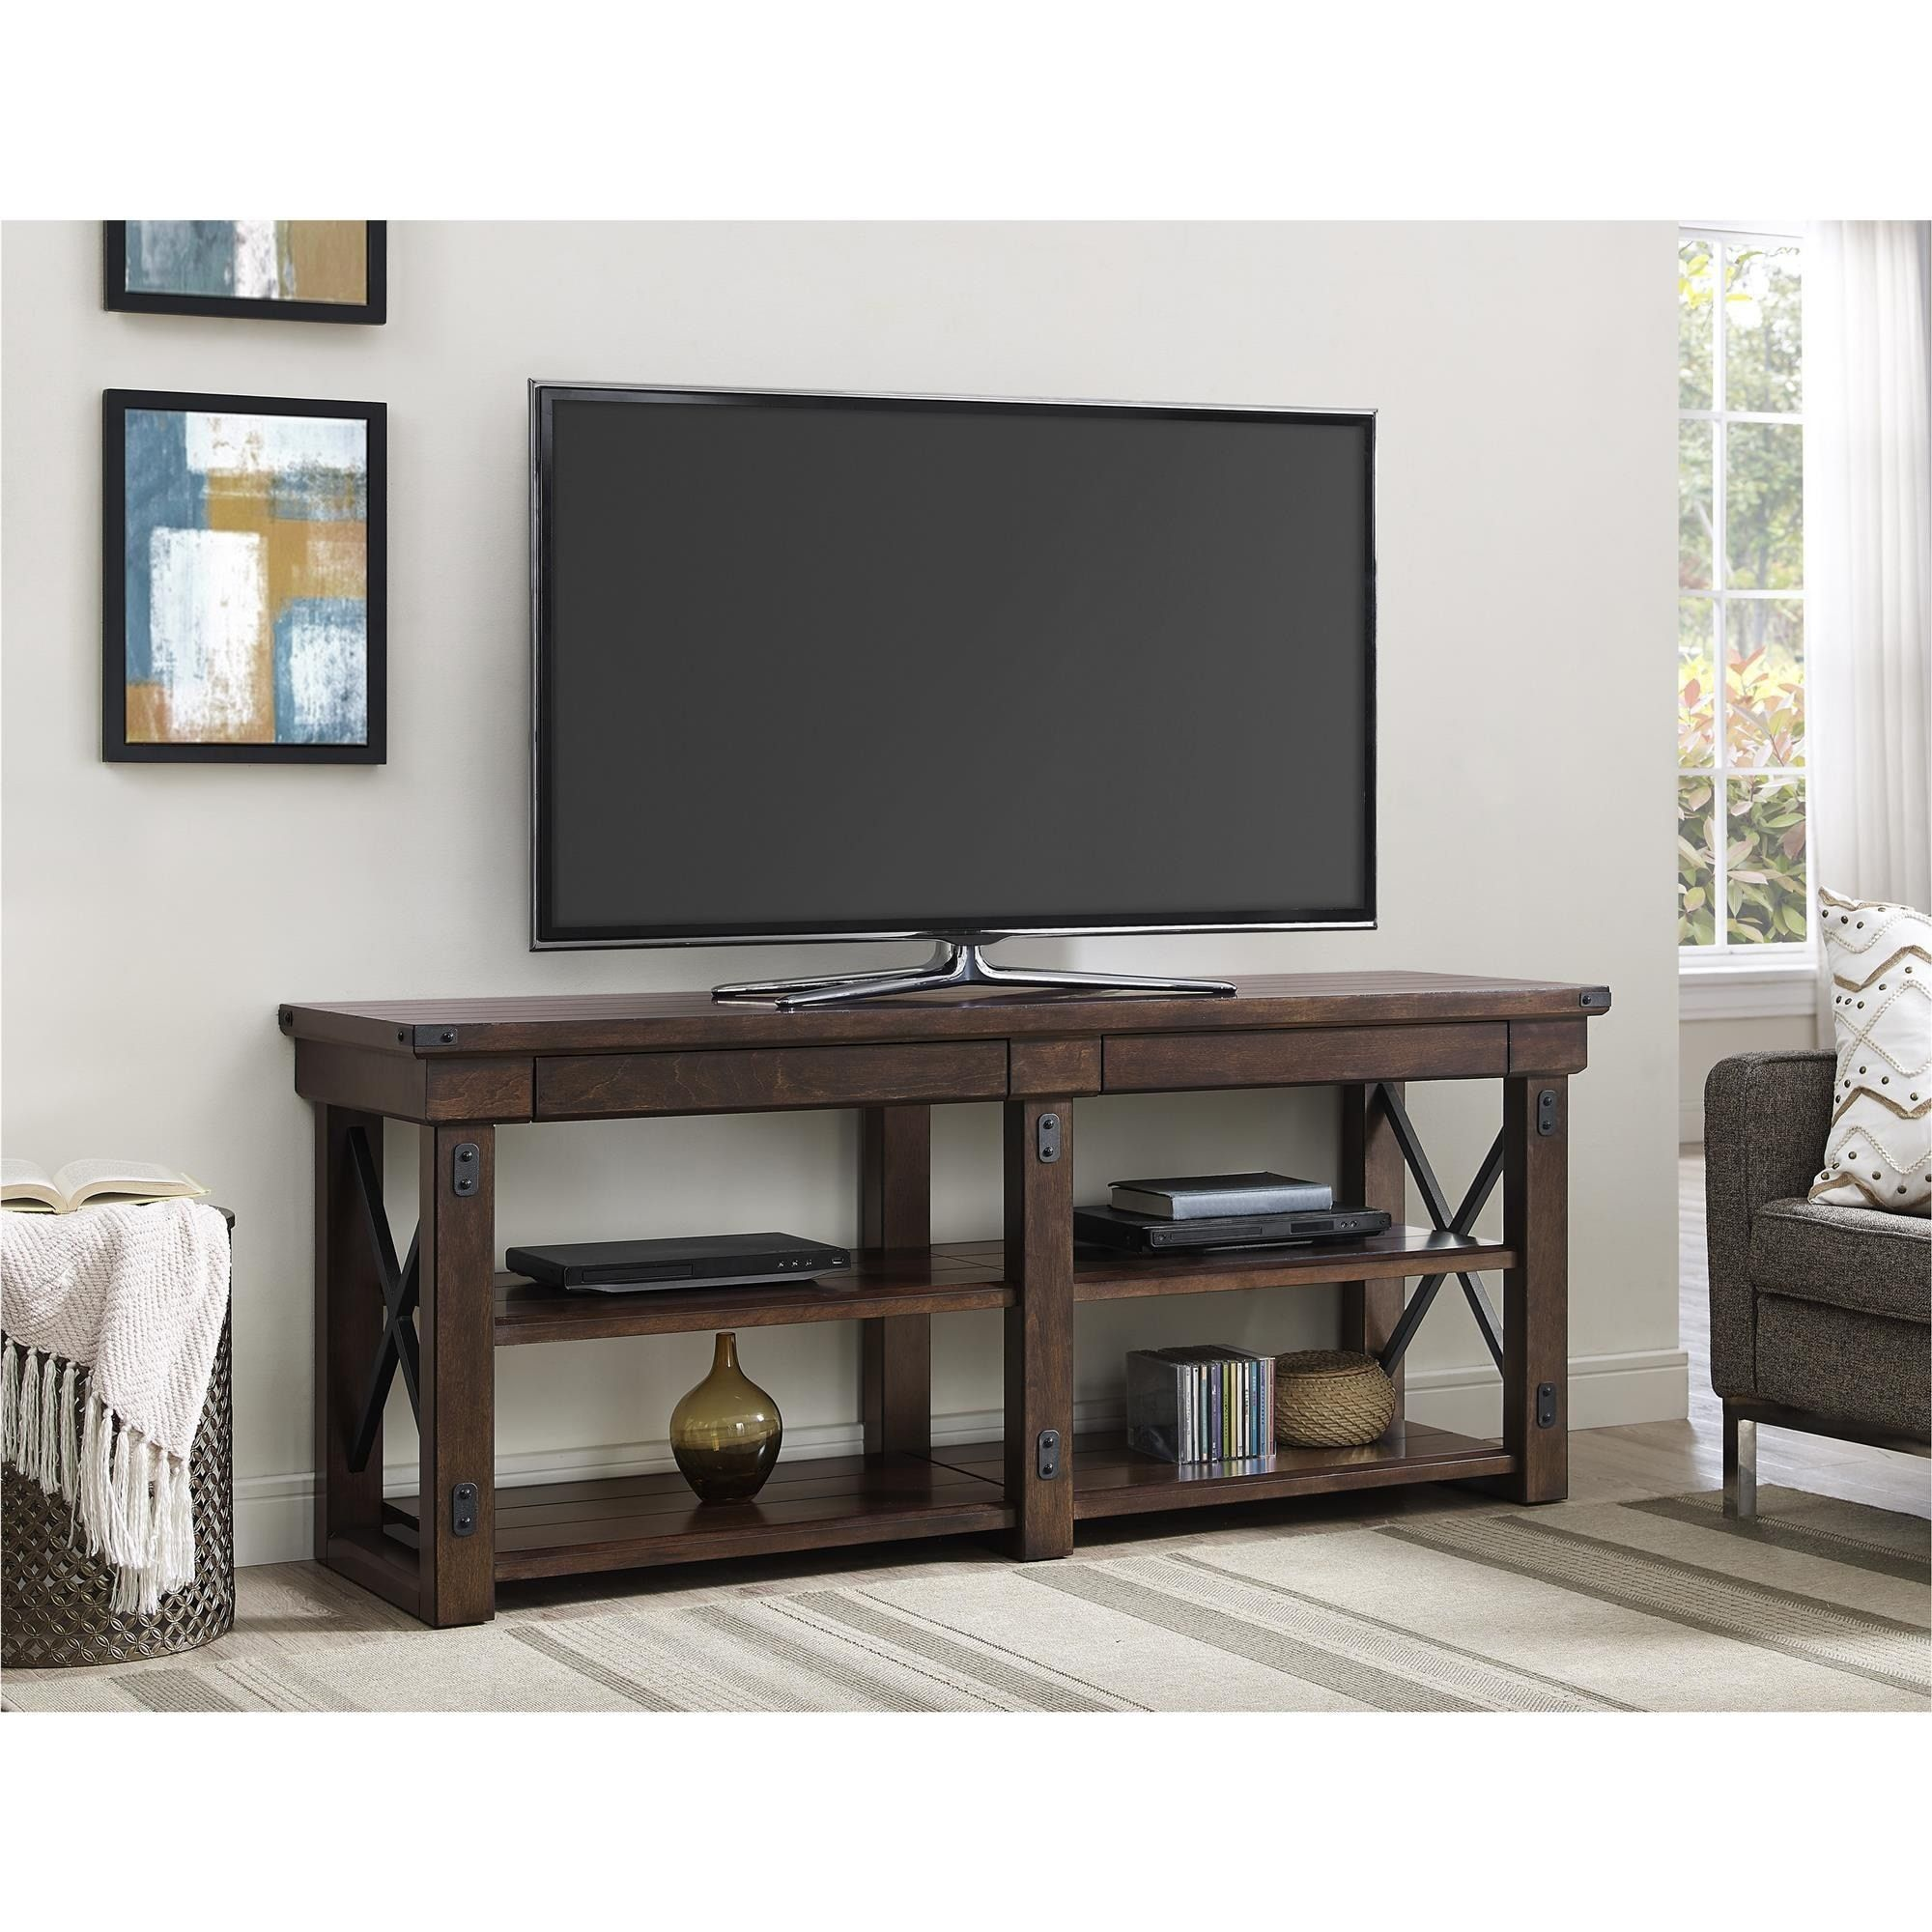 The Altra Wildwood Veneer 65 Inch Tv Stand Brings Both Beauty And